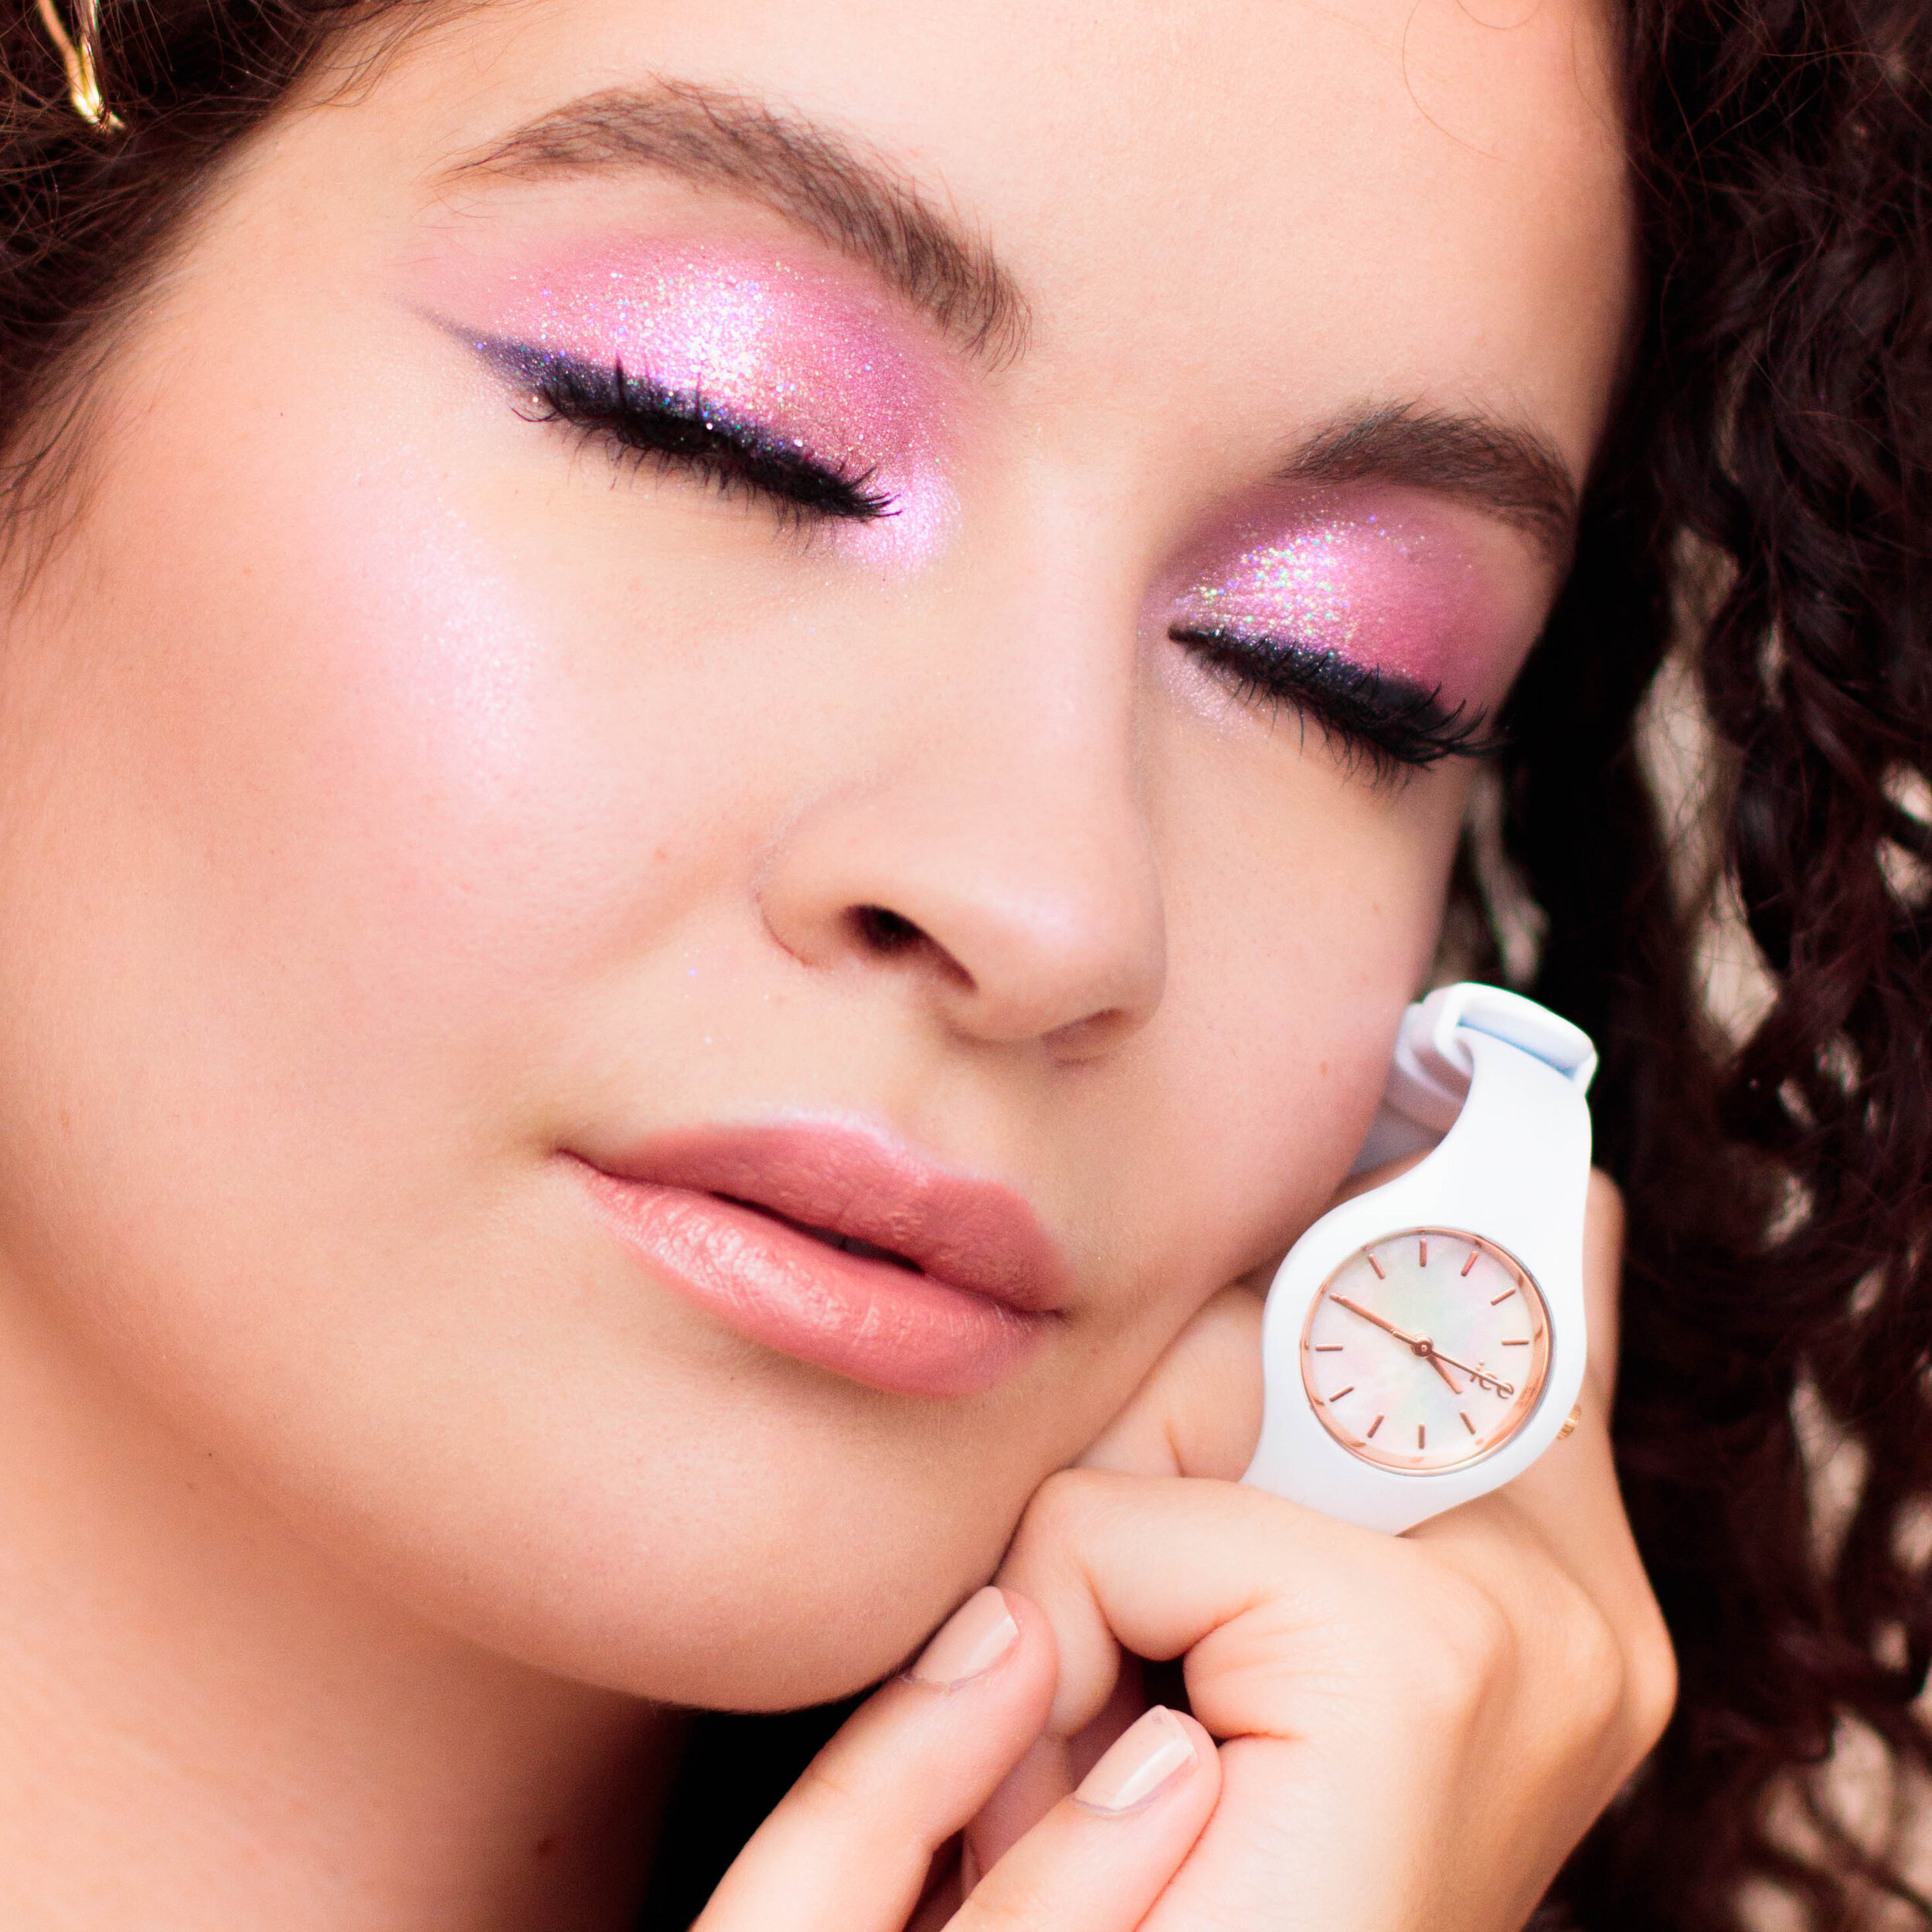 ice-watch-pearl-xs-white-makeup-pauuulette-close-up-1.jpg